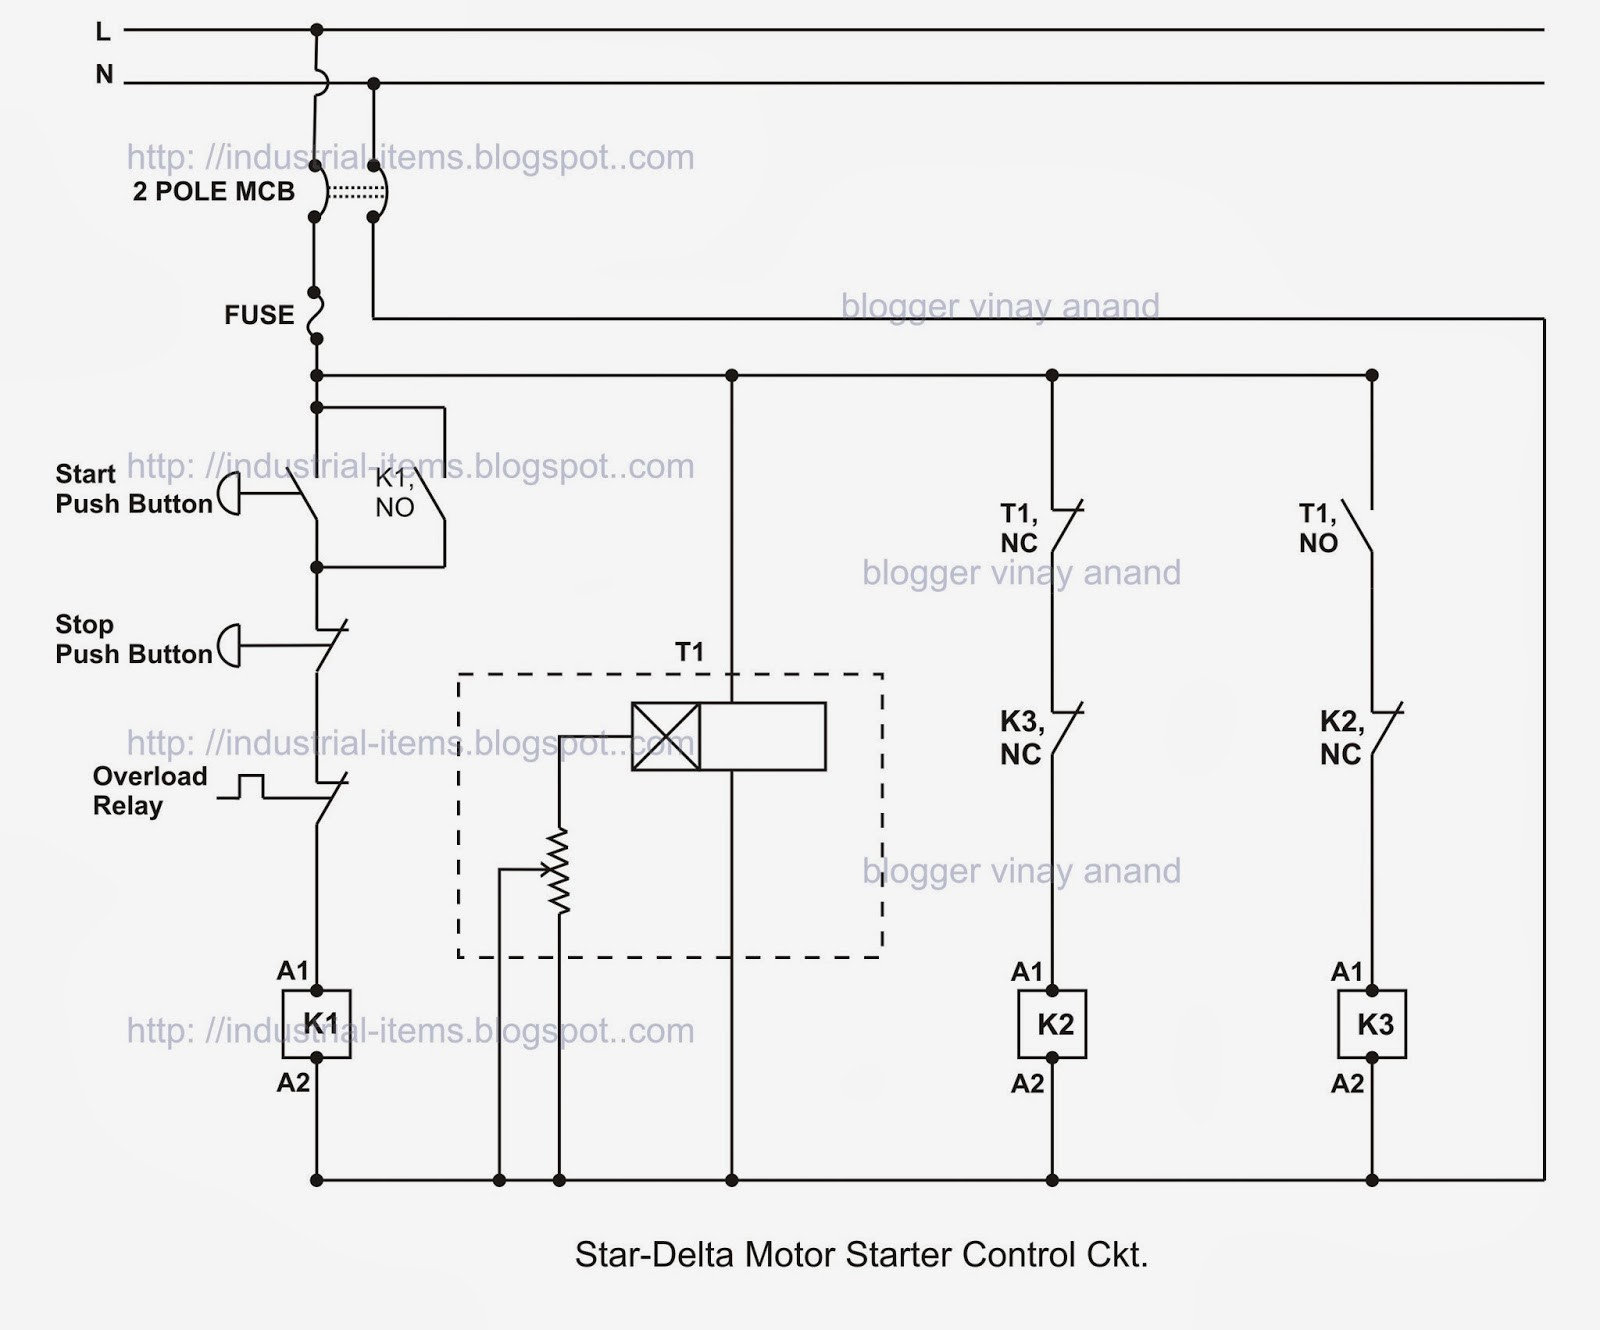 Beautiful Forward Reverse Control Circuit Image - Electrical System ...